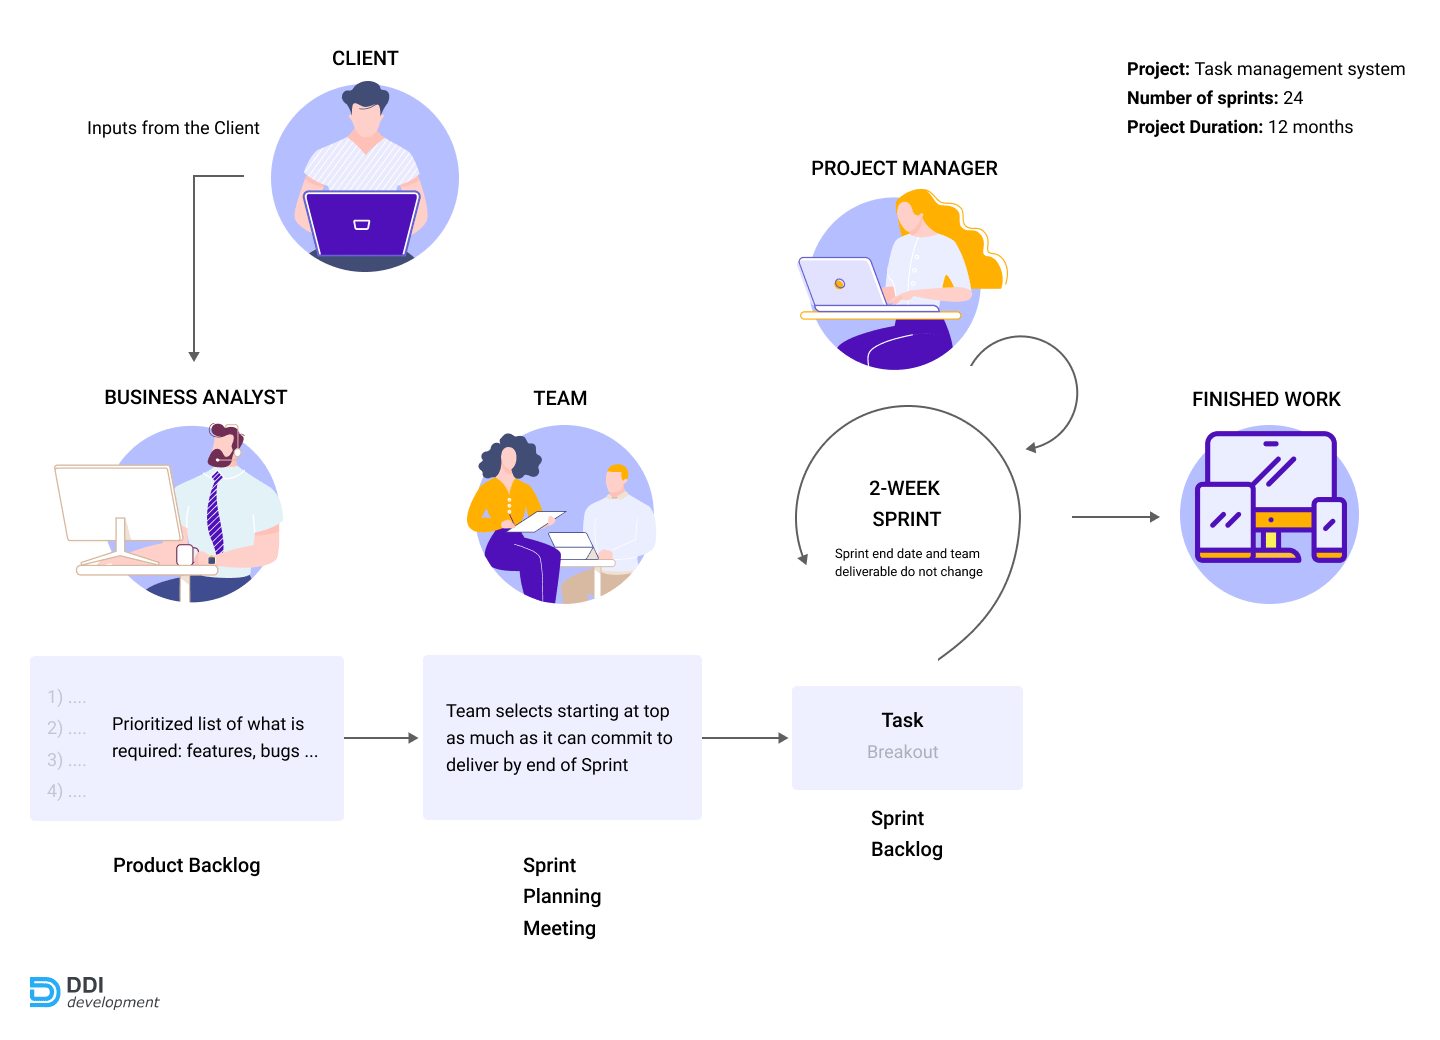 Development process of the task management platform